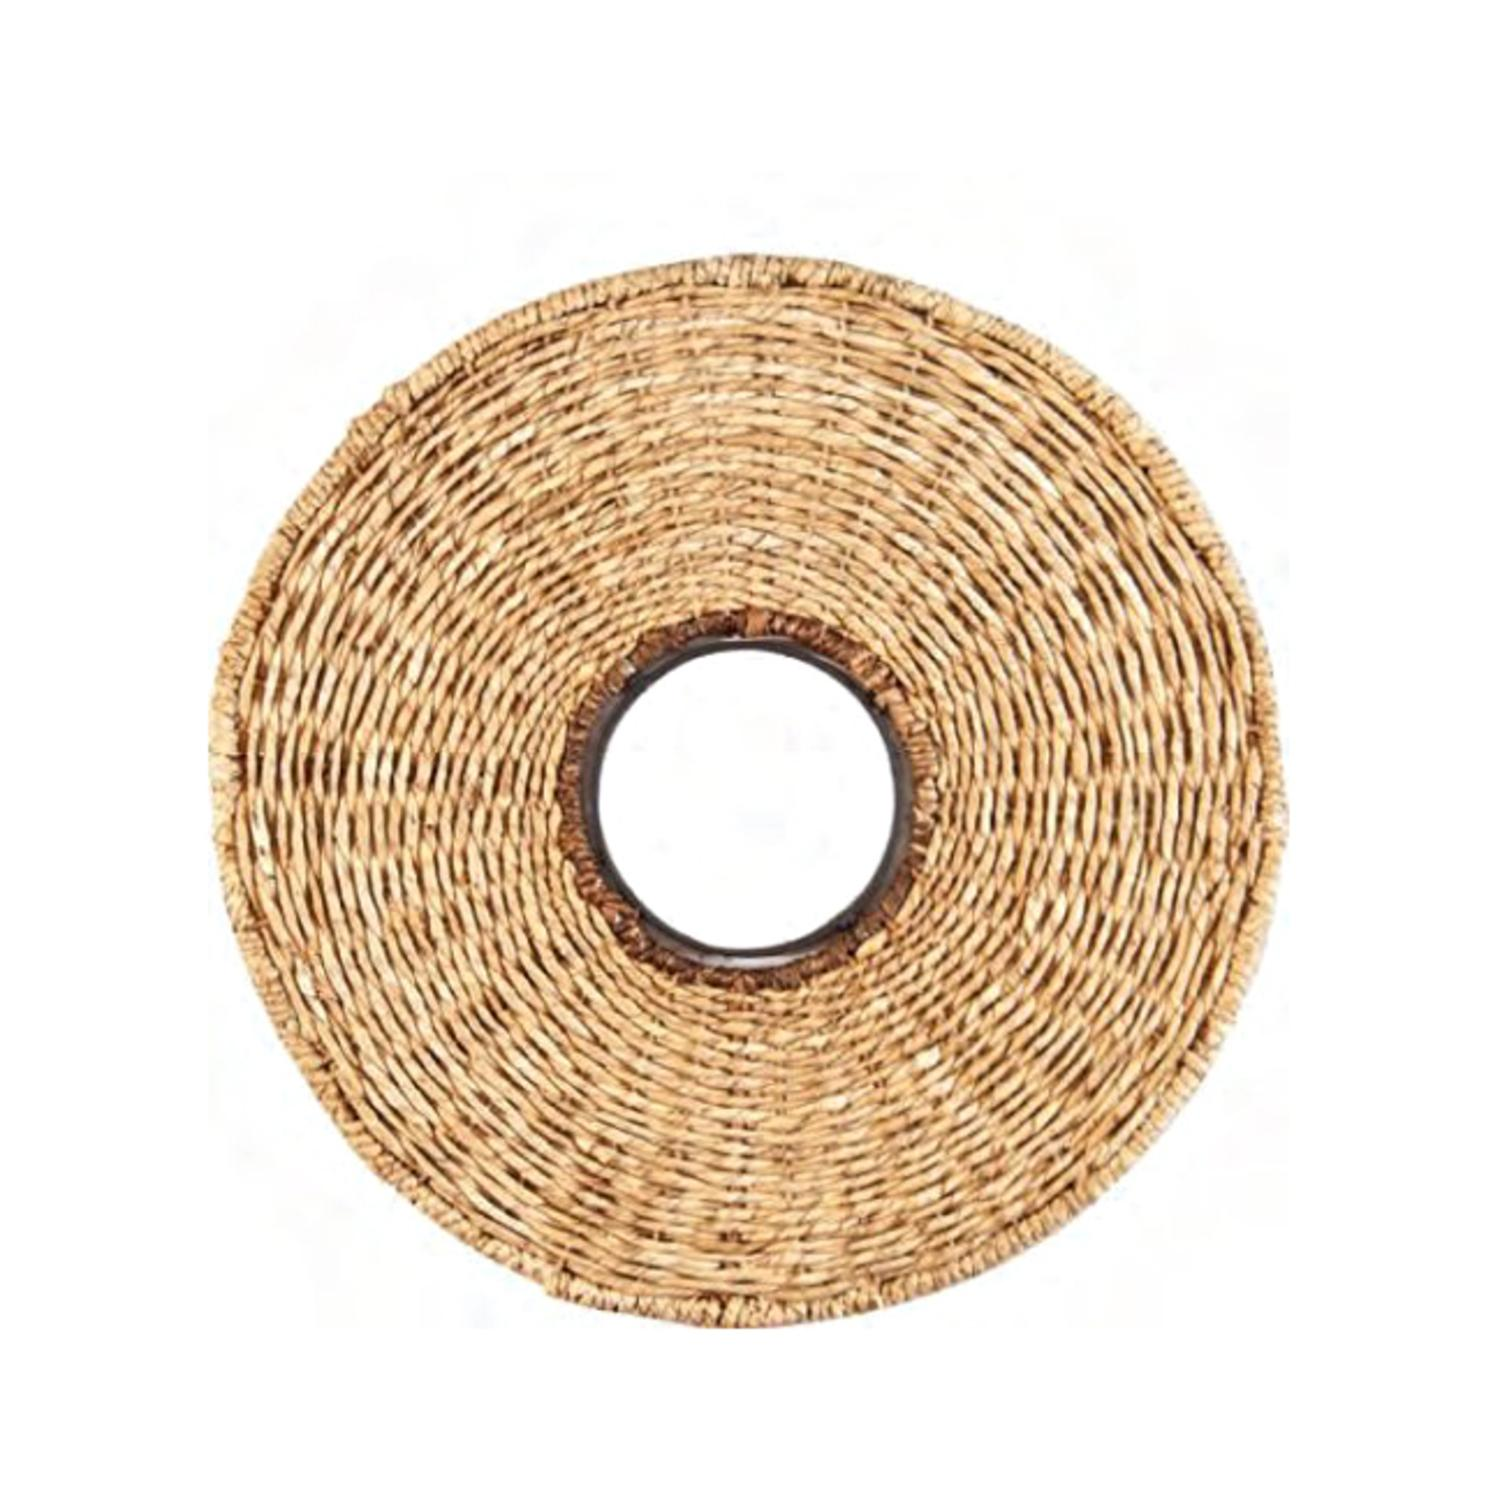 "20"" Rustic Basket Wicker Woven Round Wall Mirror"